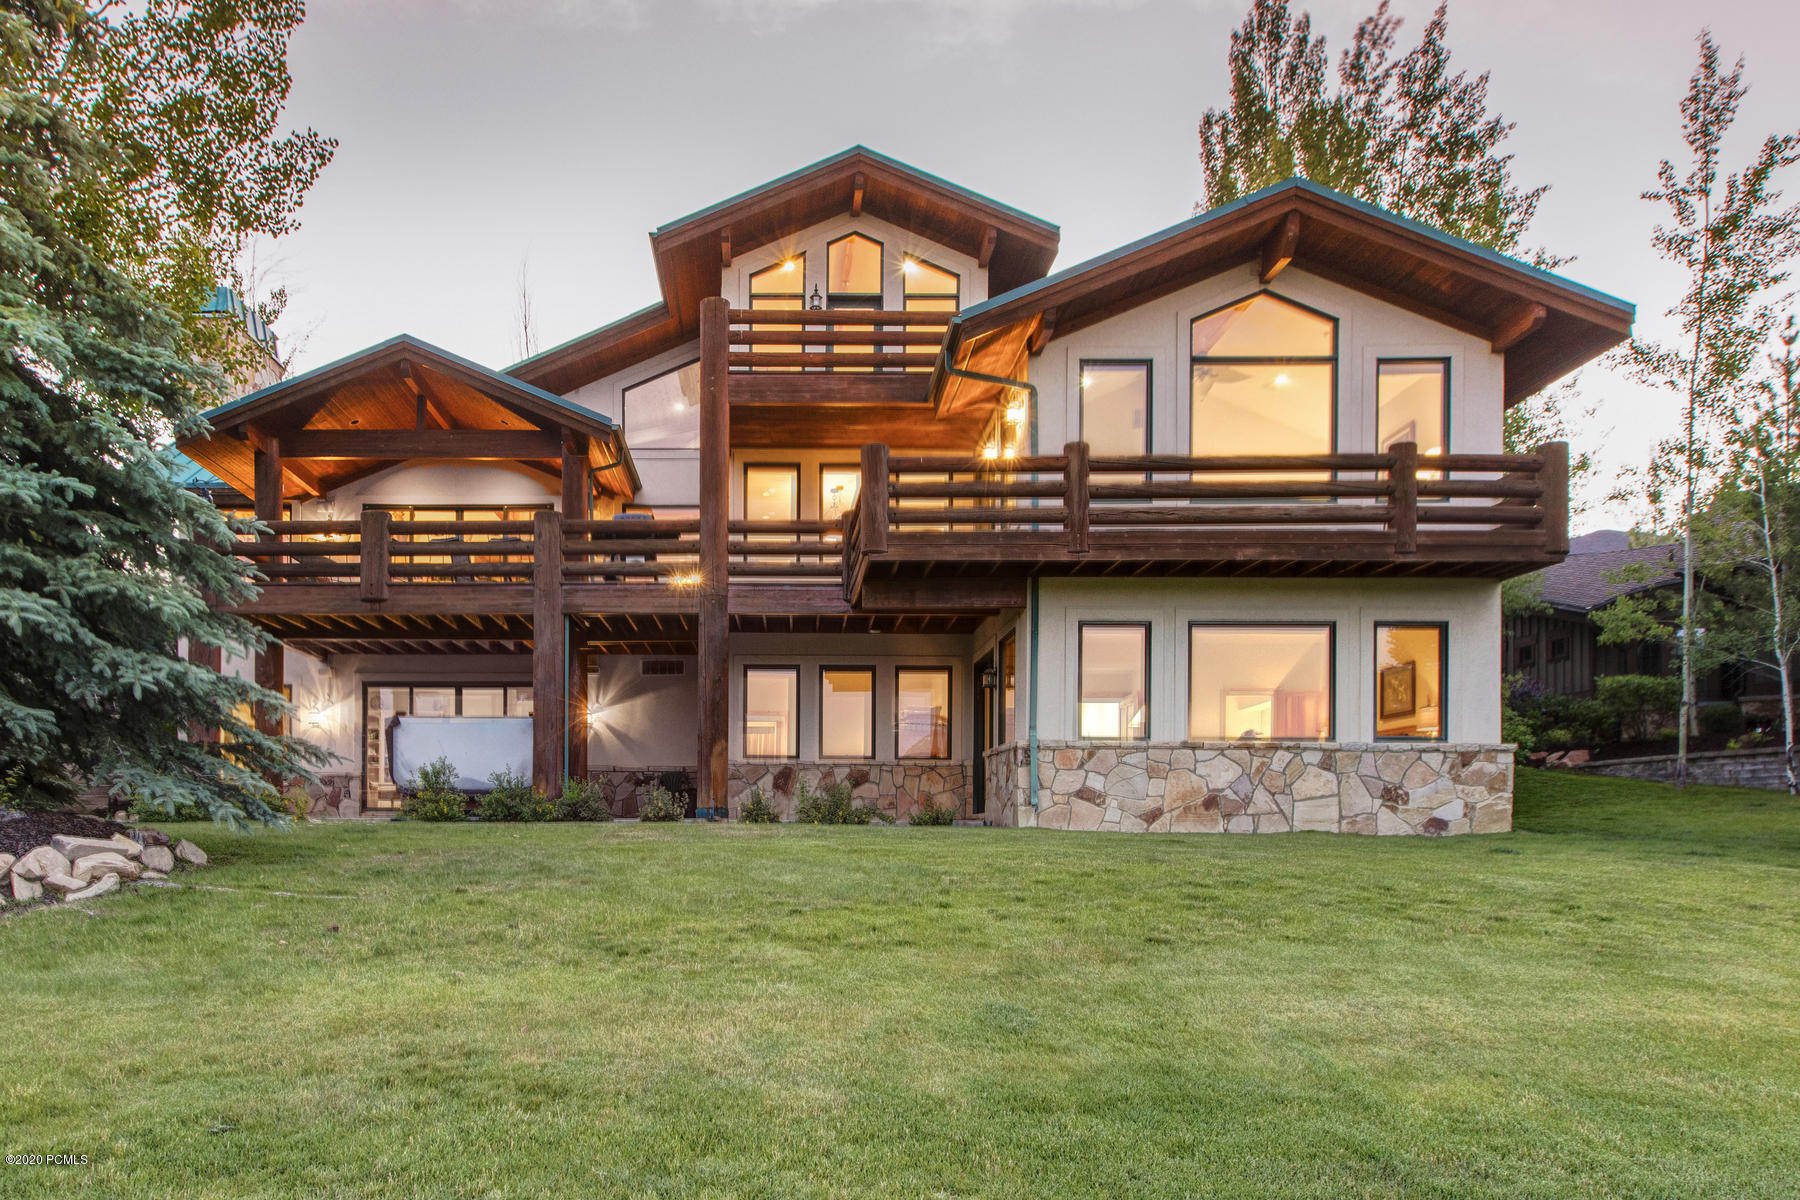 18 Ashley Court, Park City, Utah 84060, 6 Bedrooms Bedrooms, ,7 BathroomsBathrooms,Single Family,For Sale,Ashley,20190109112430415765000000